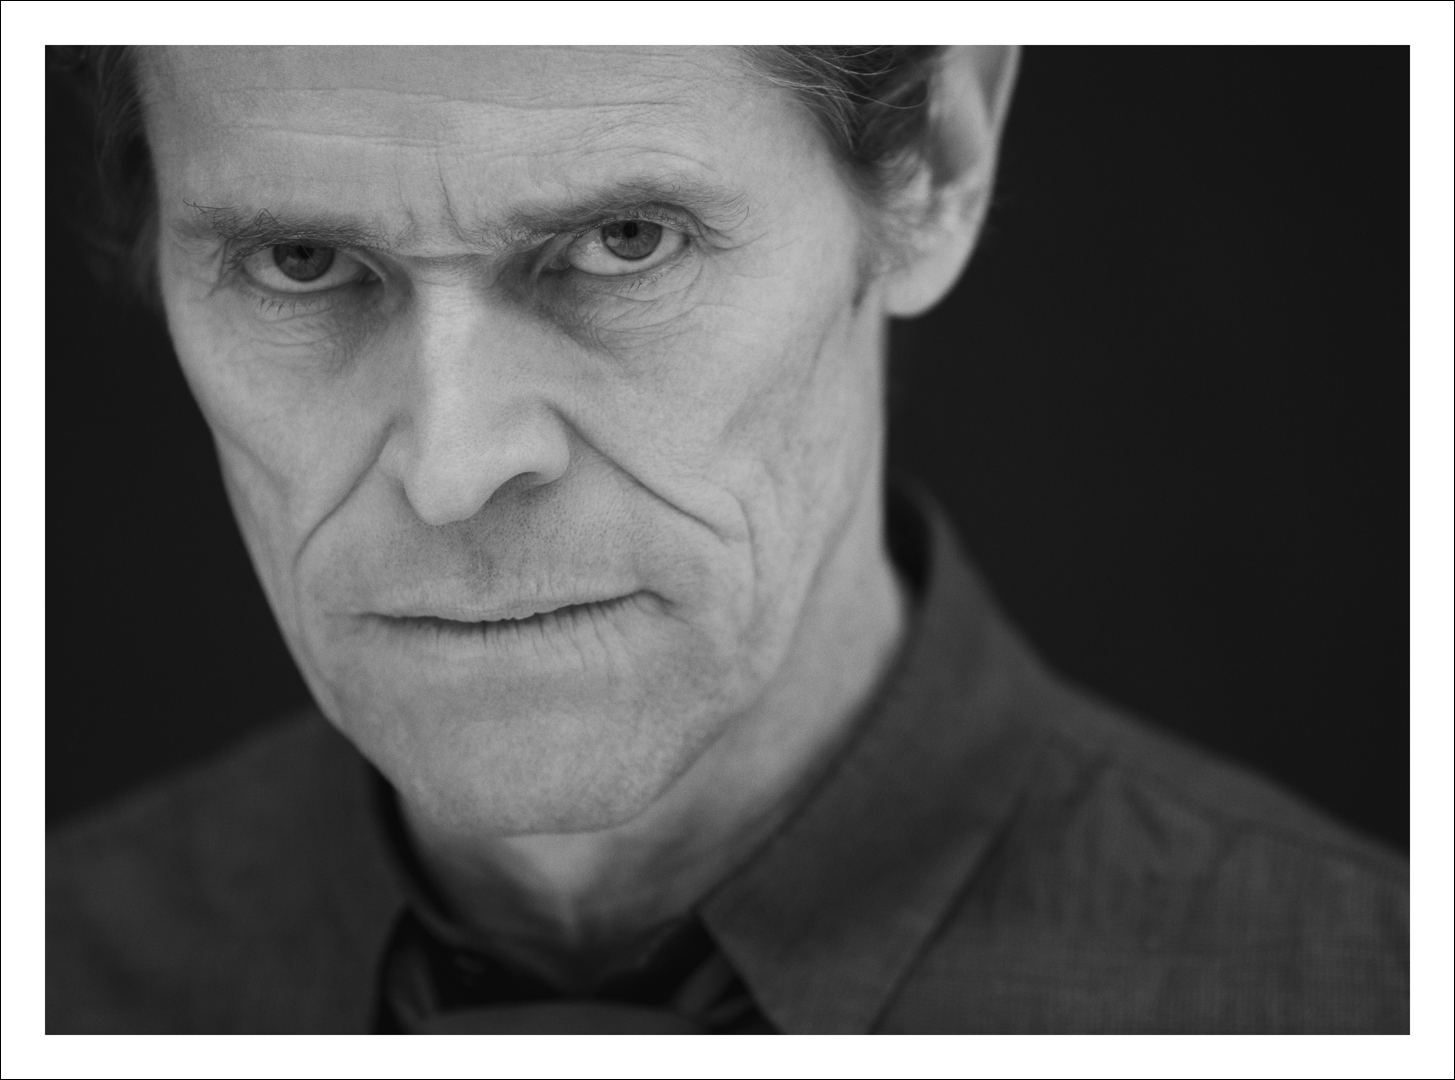 22_TIM_BARBER_WILLEM_DAFOE.jpg